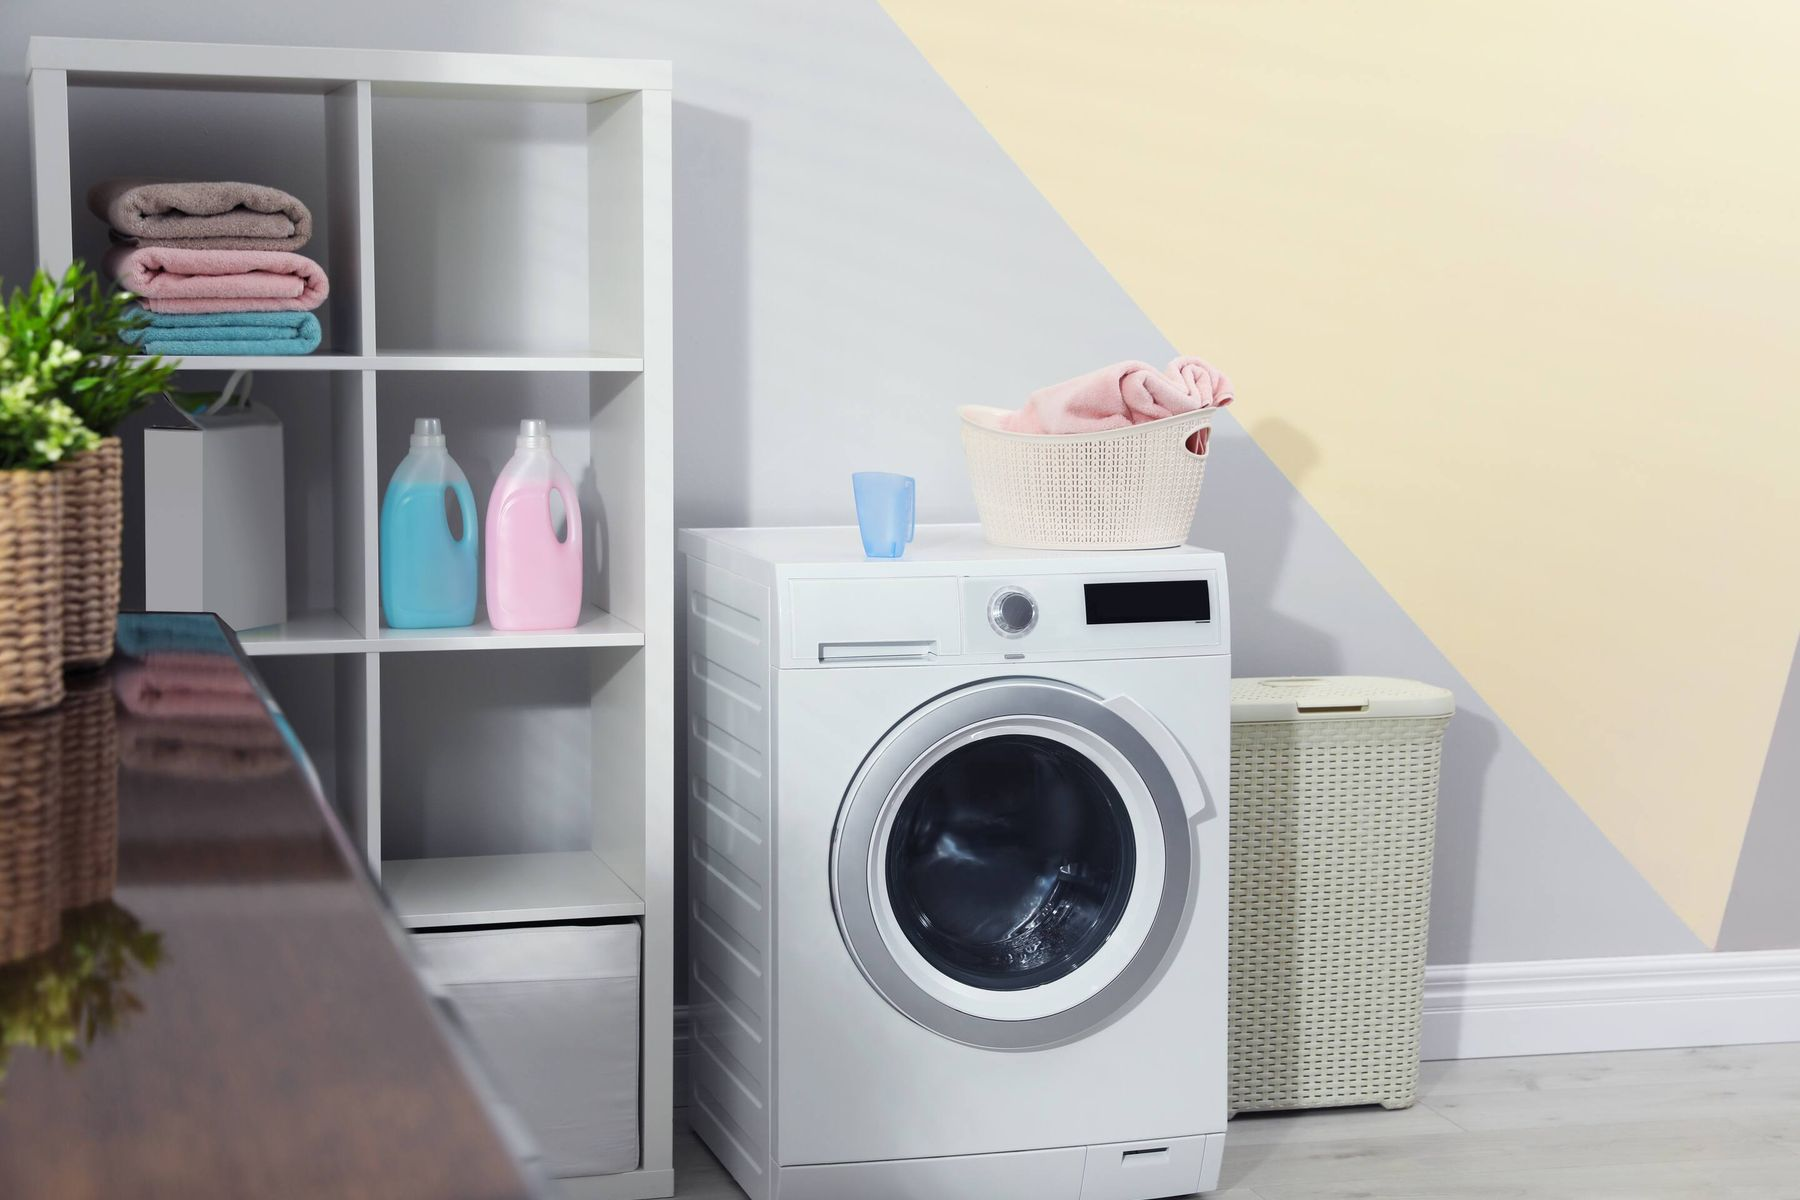 5 interesting things about washing machines that you should know